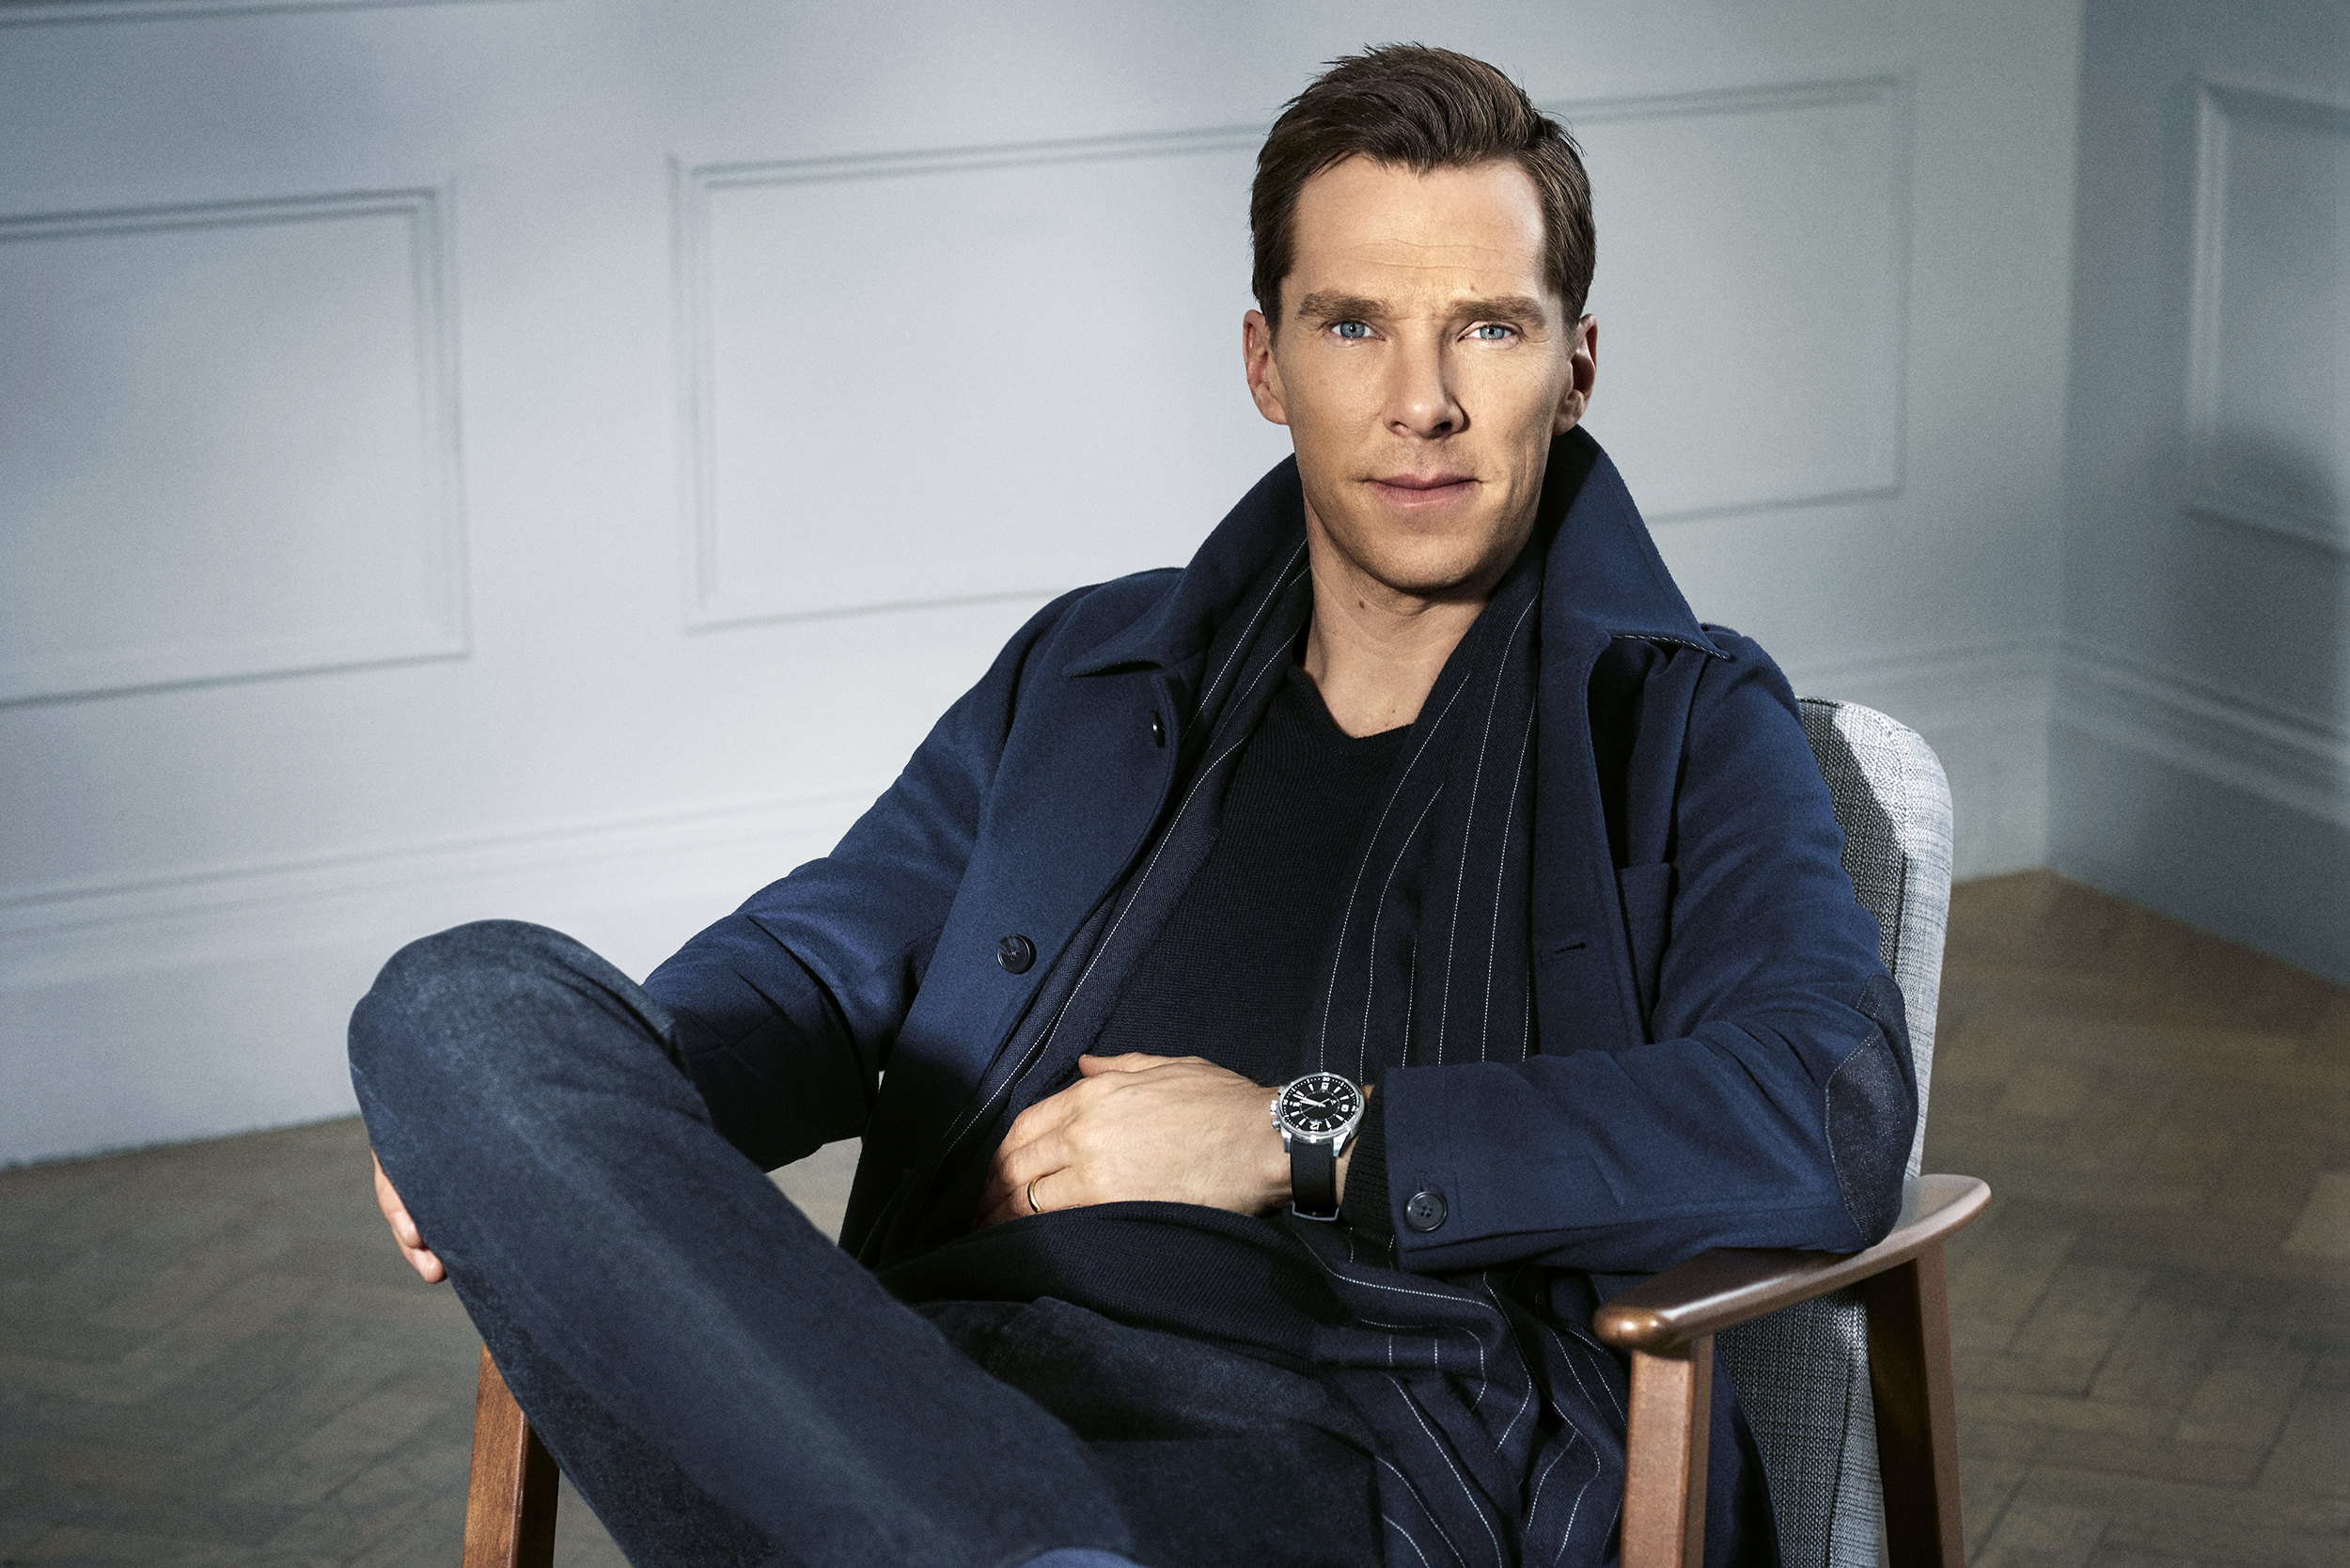 Benedict Cumberbatch_1058_V02 low res.jpg